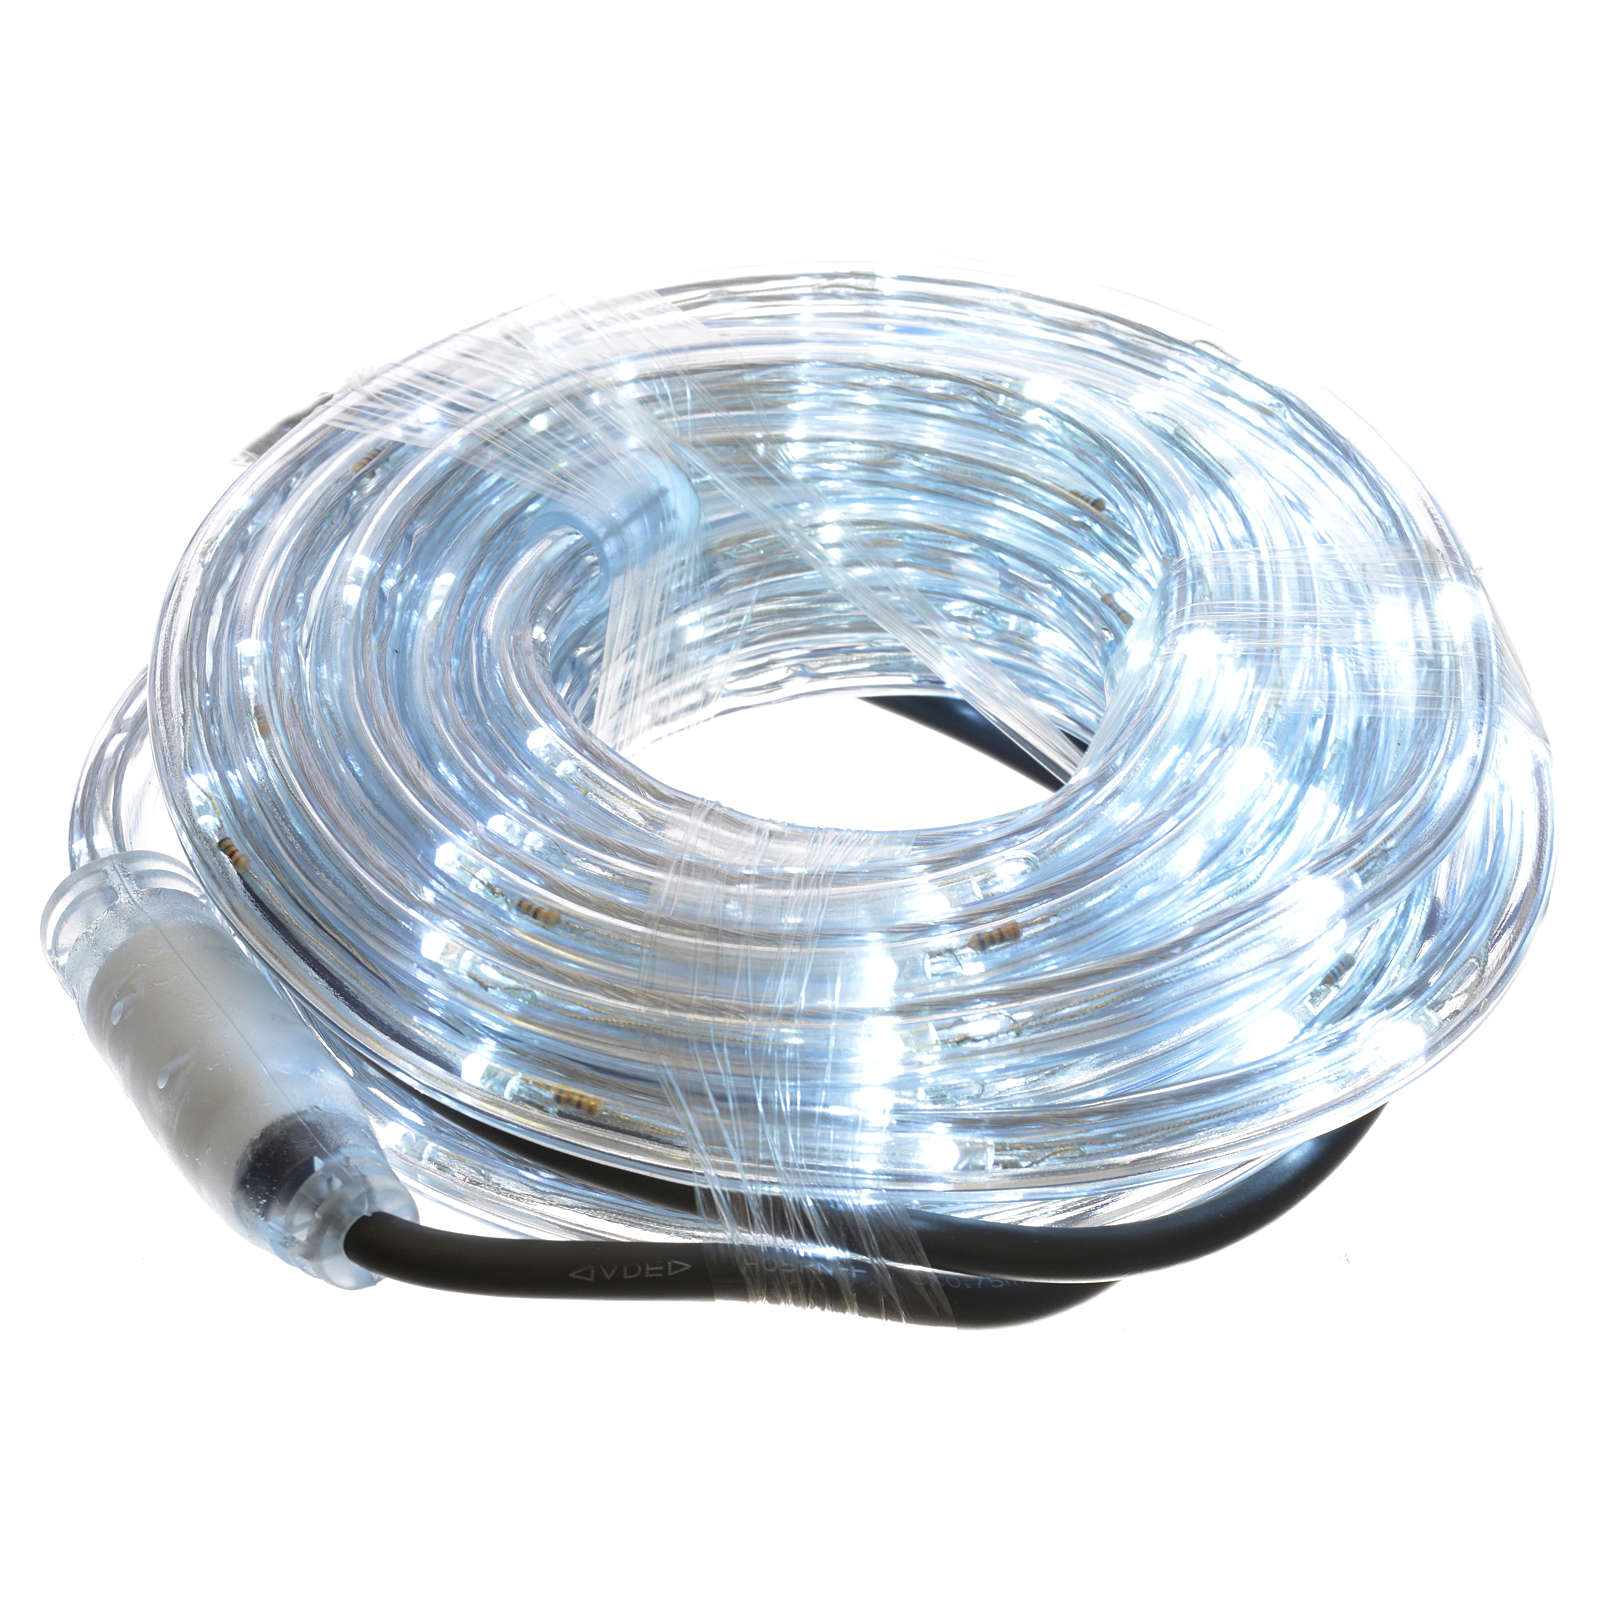 Christmas lights, tube of 6m, ice white, for indoor and outdoor use, programmable 3